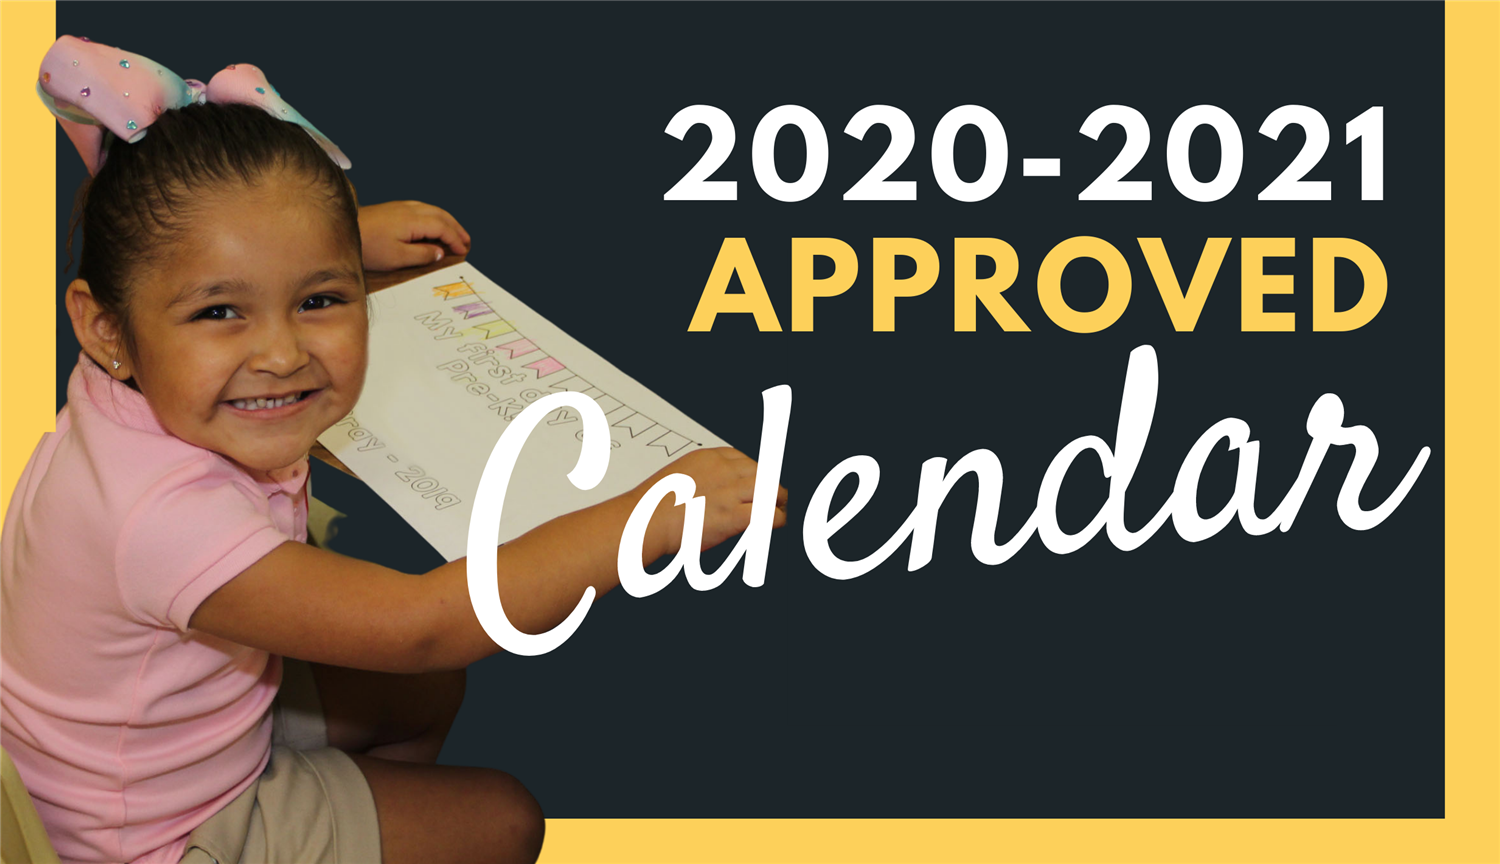 Updated: WISD Board of Trustees approves new 2020-2021 calendar